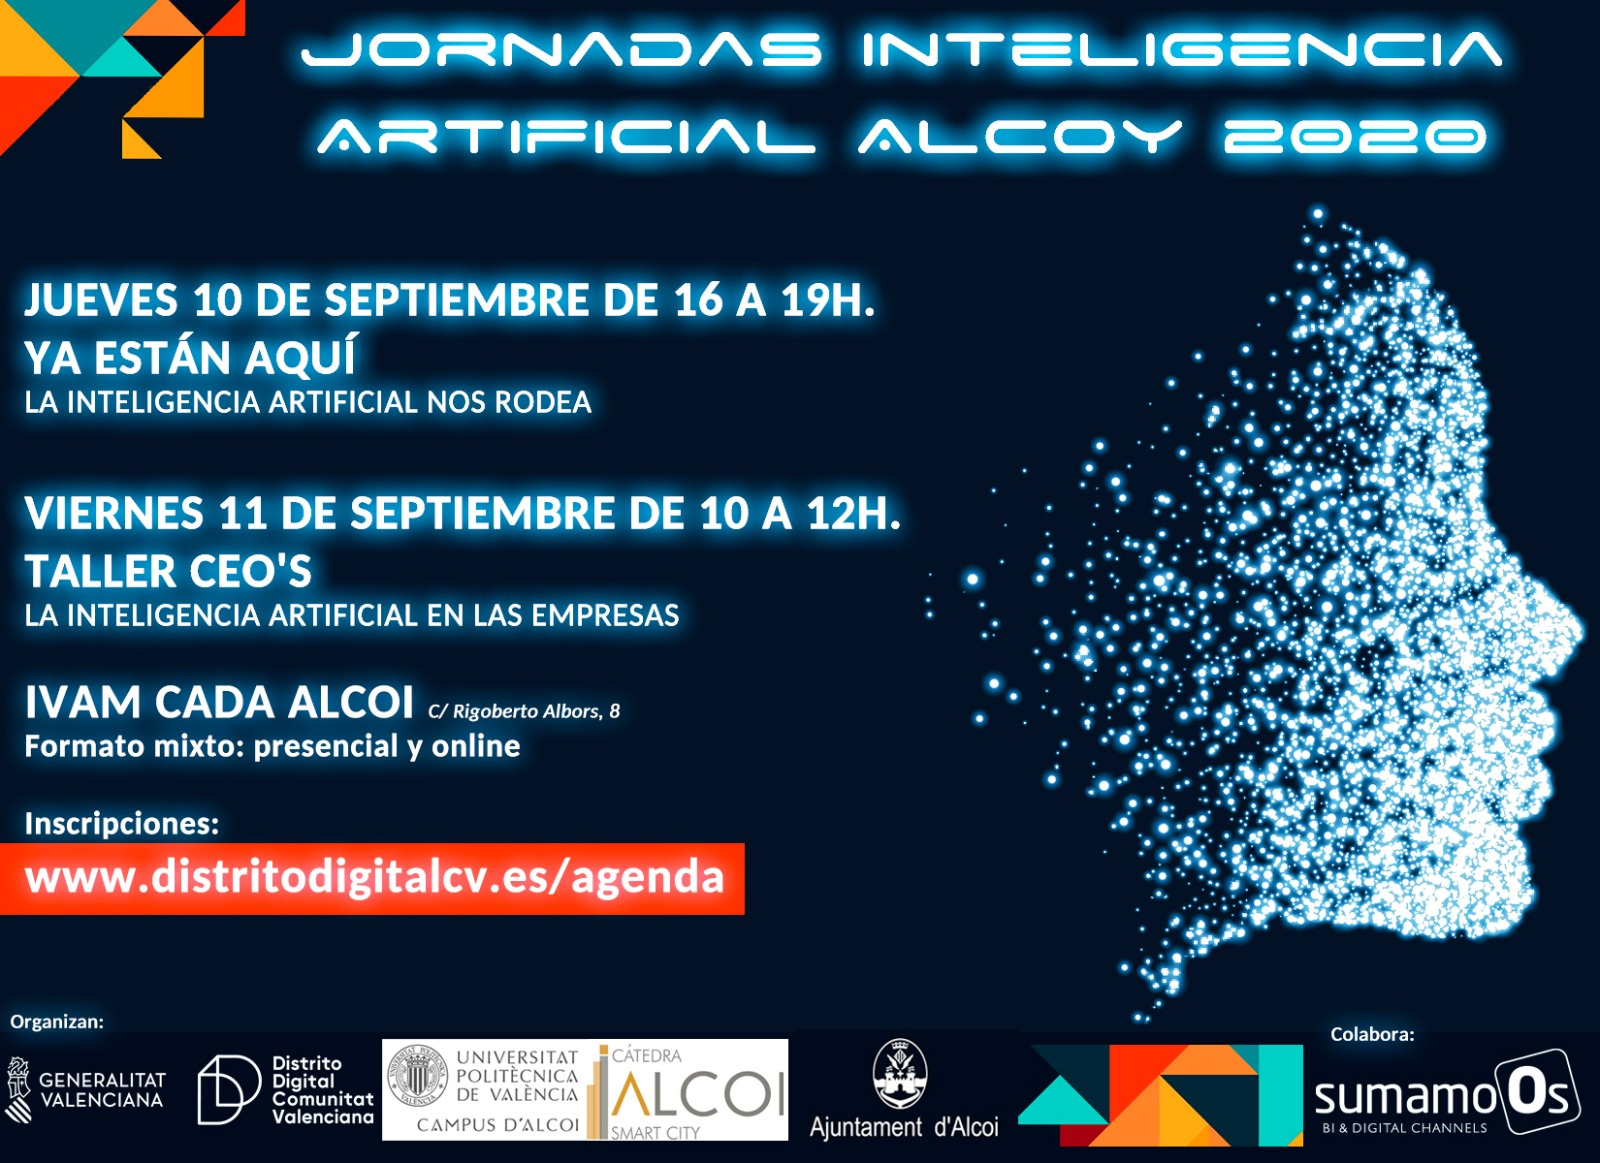 jornadas_inteligencia_artificial_alcoy